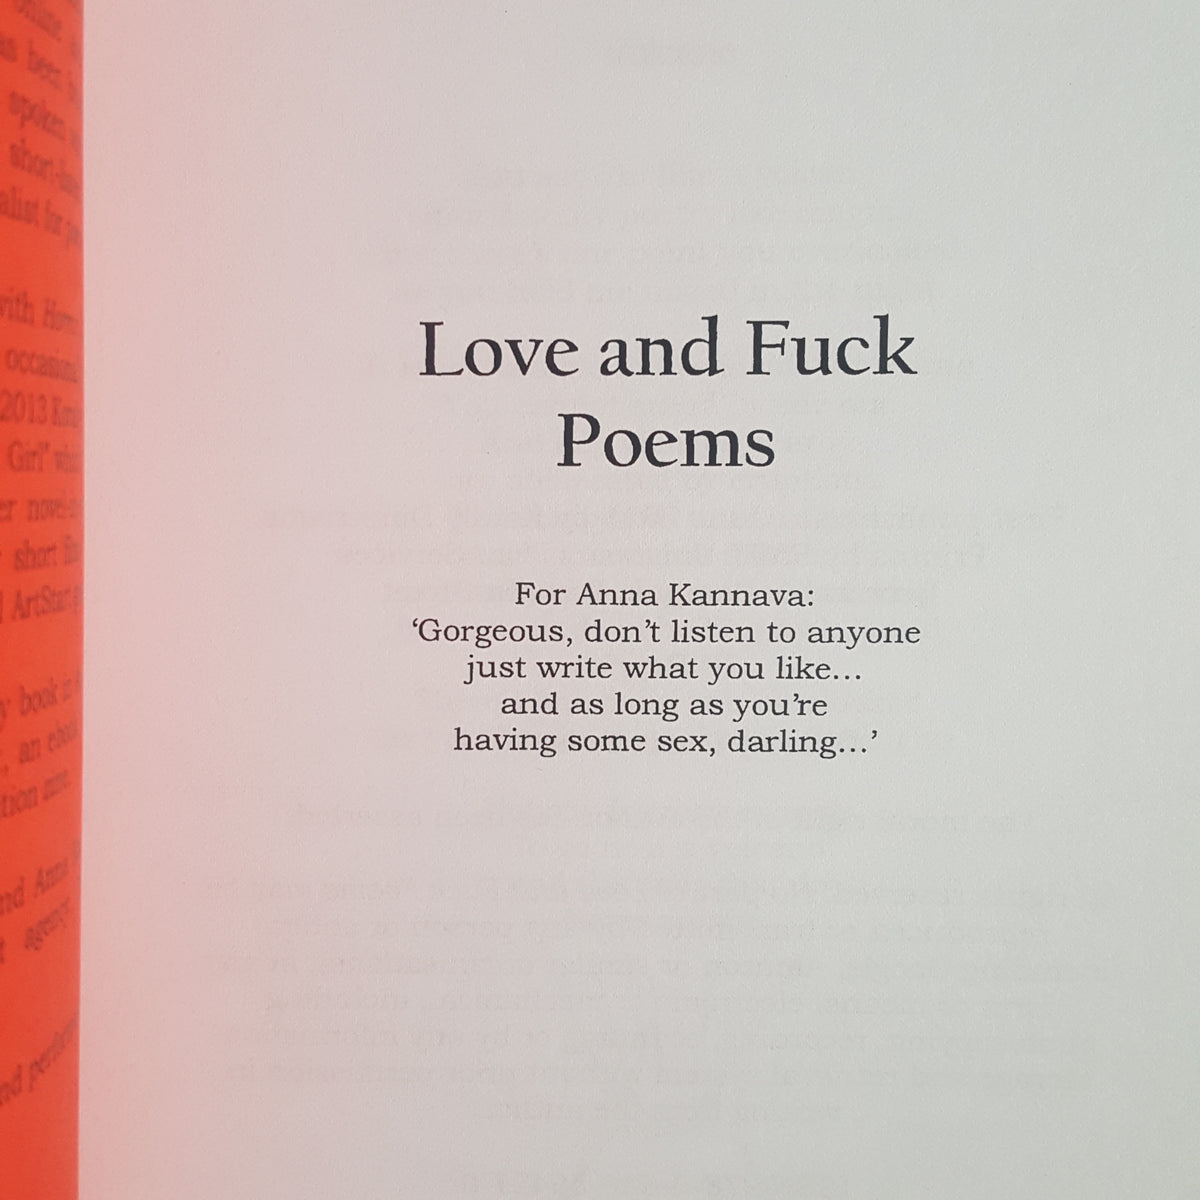 Love and Fuck Poems